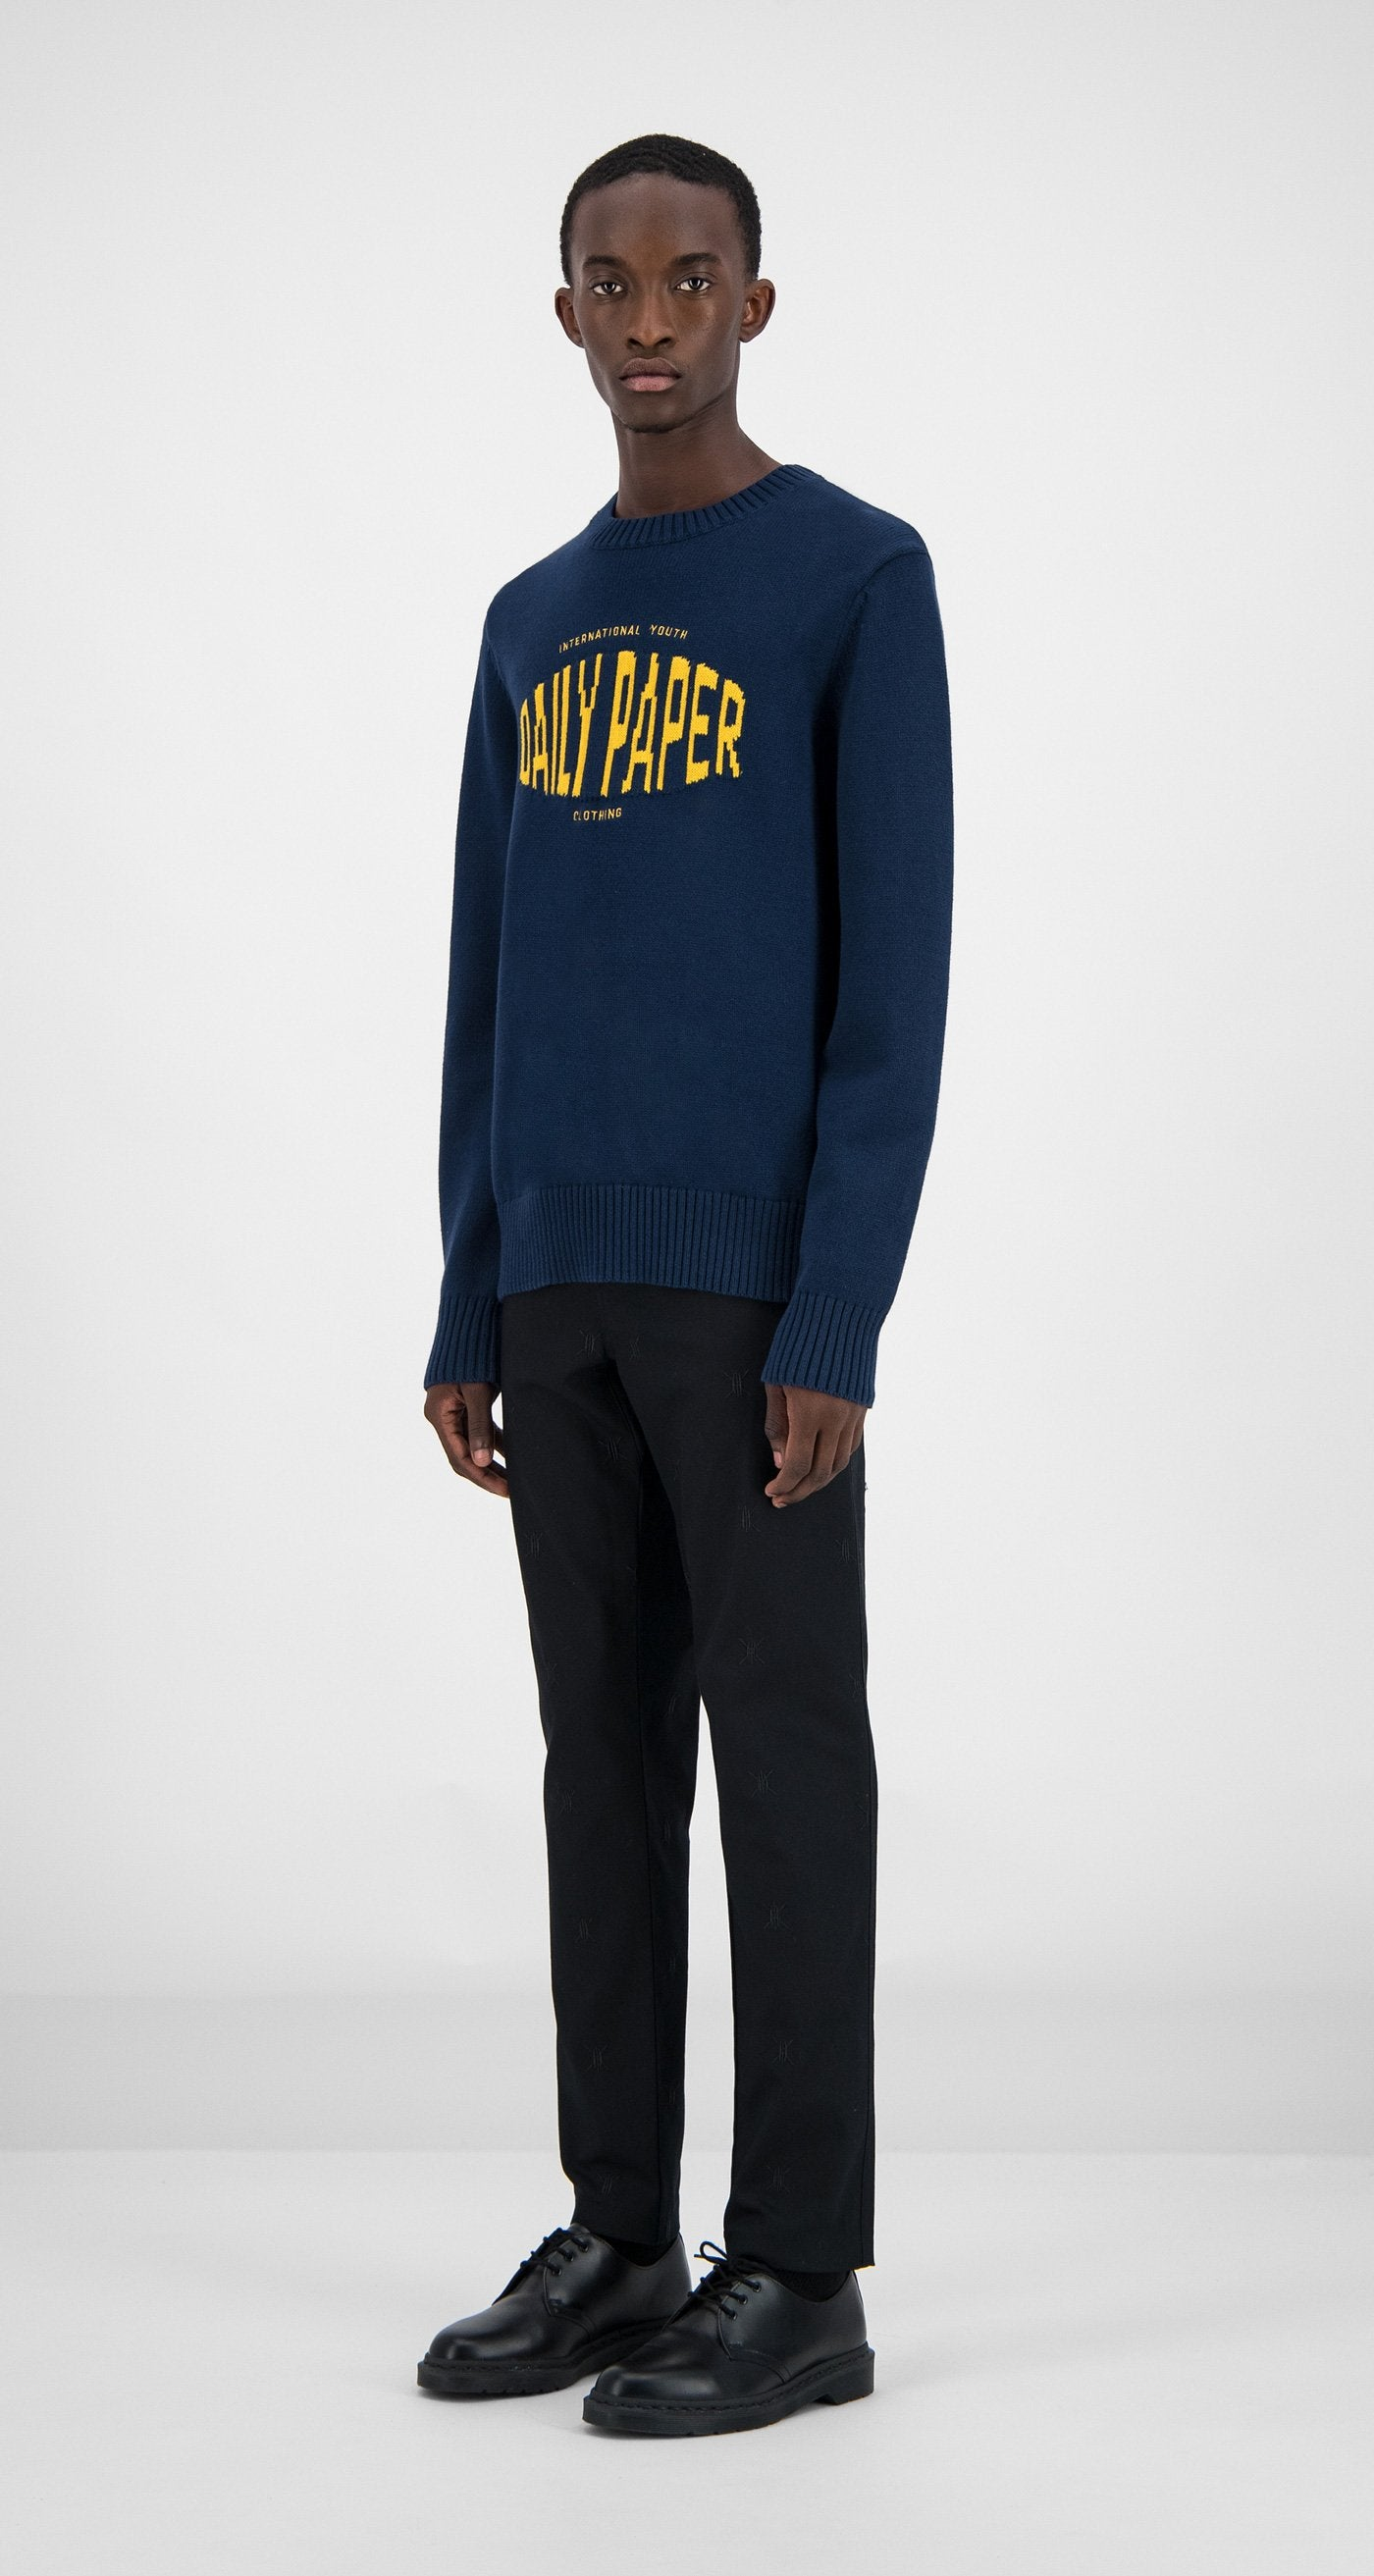 Daily Paper - Navy Genet Sweater Men